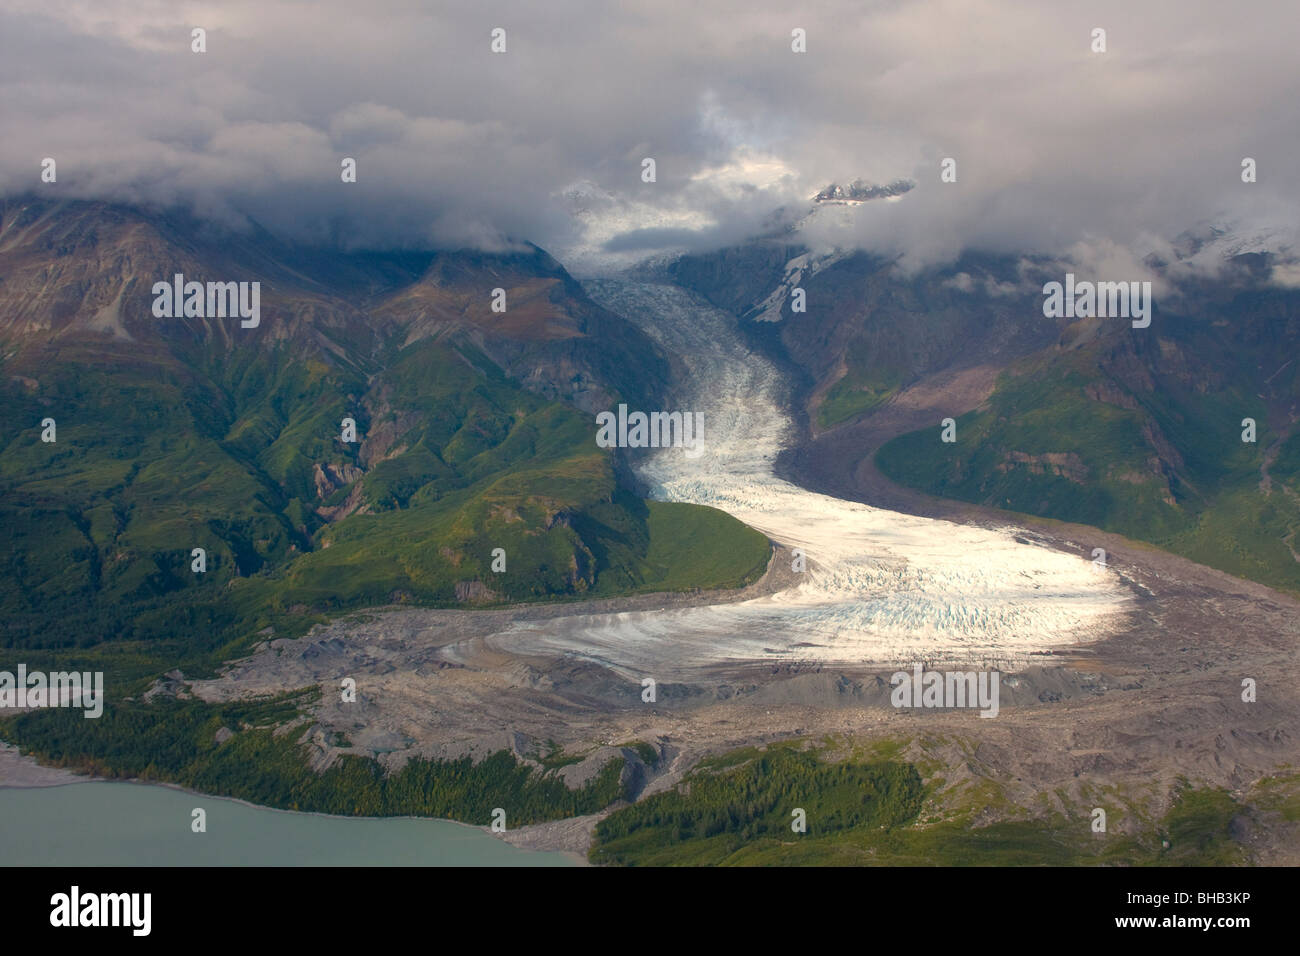 View of Barrier Glacier entering into the east side of Chakachamna Lake, Alaska Range, HDR image - Stock Image